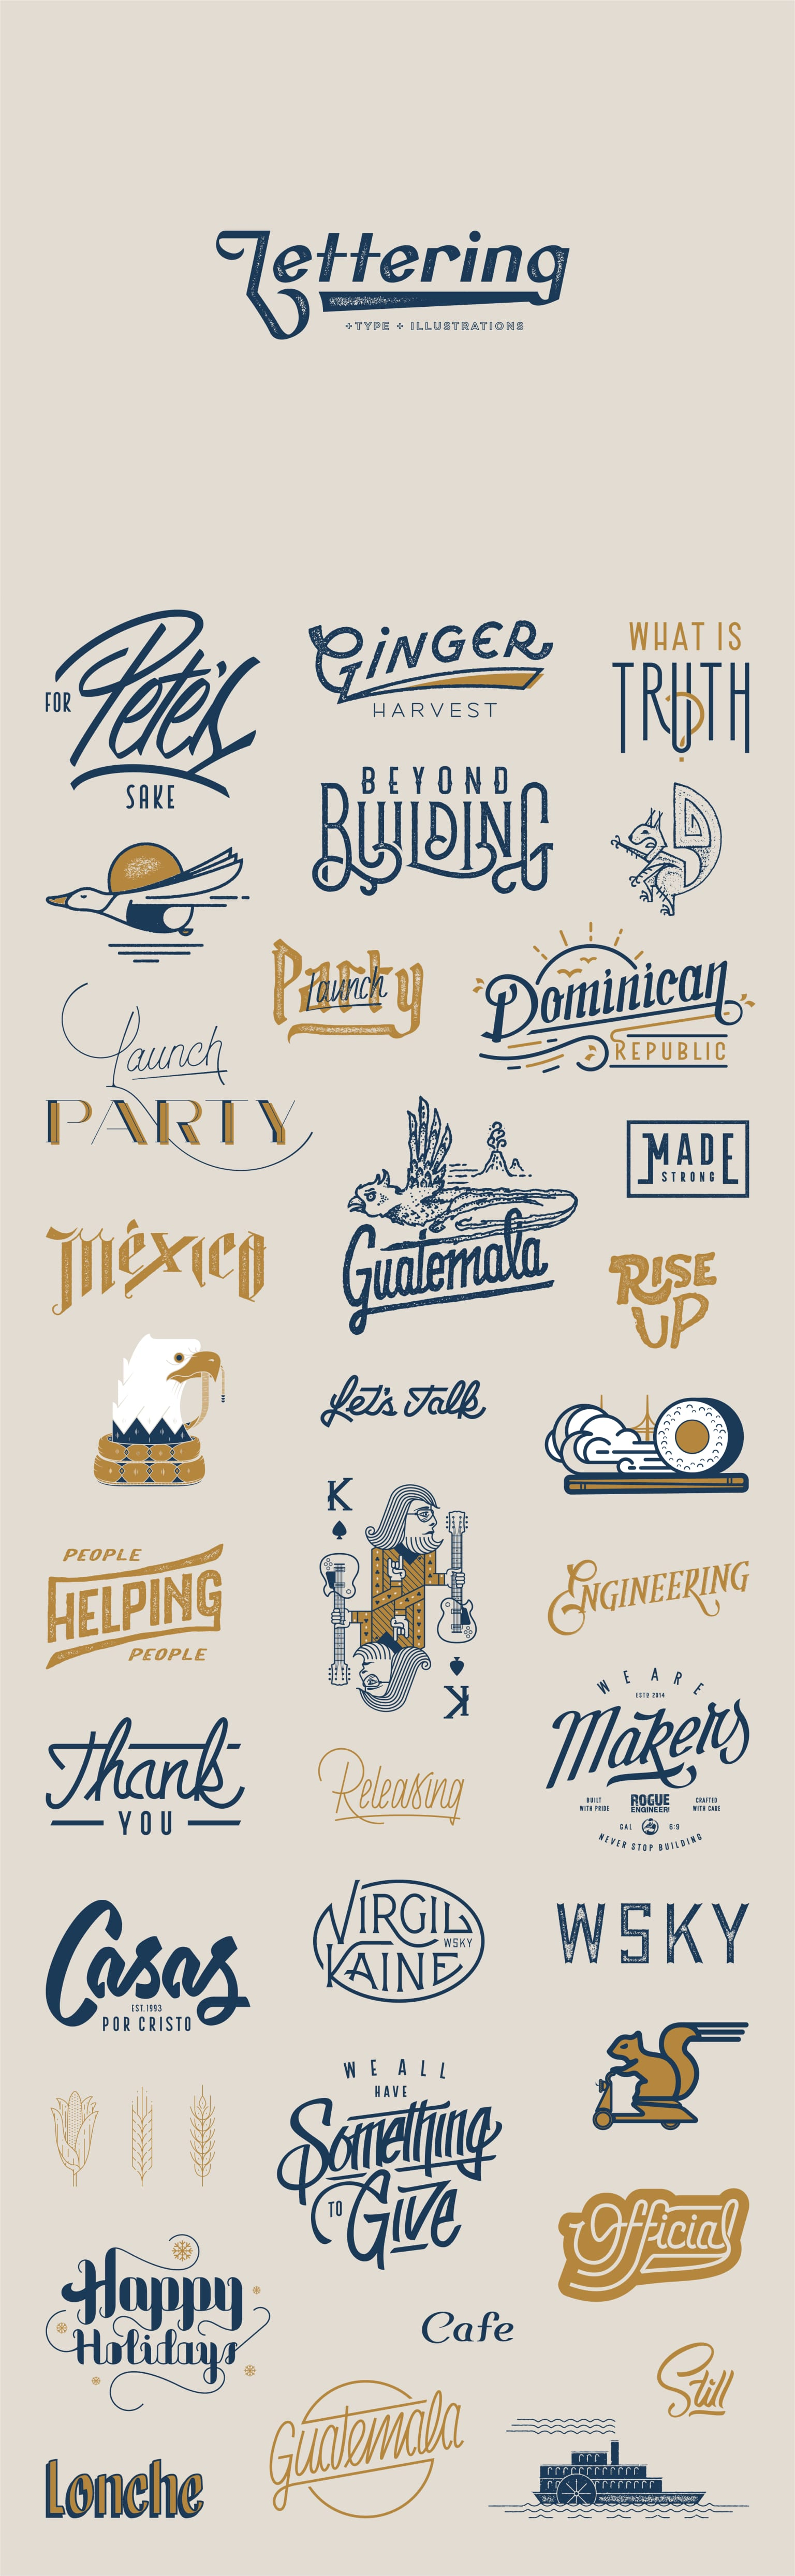 Lettering + Type + Illustrations